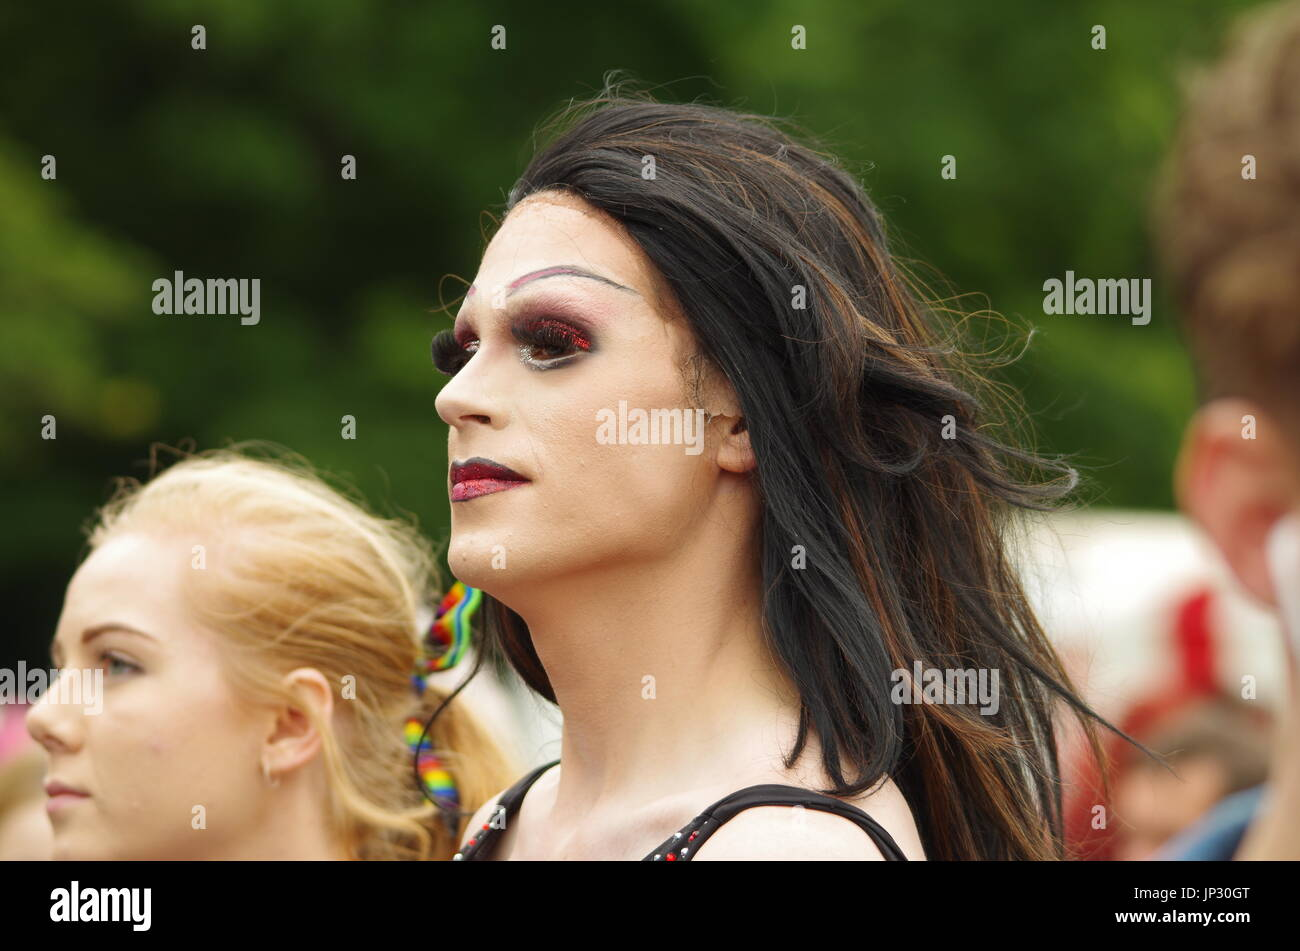 pure sheffield pride lgbt 2017 event - Stock Image